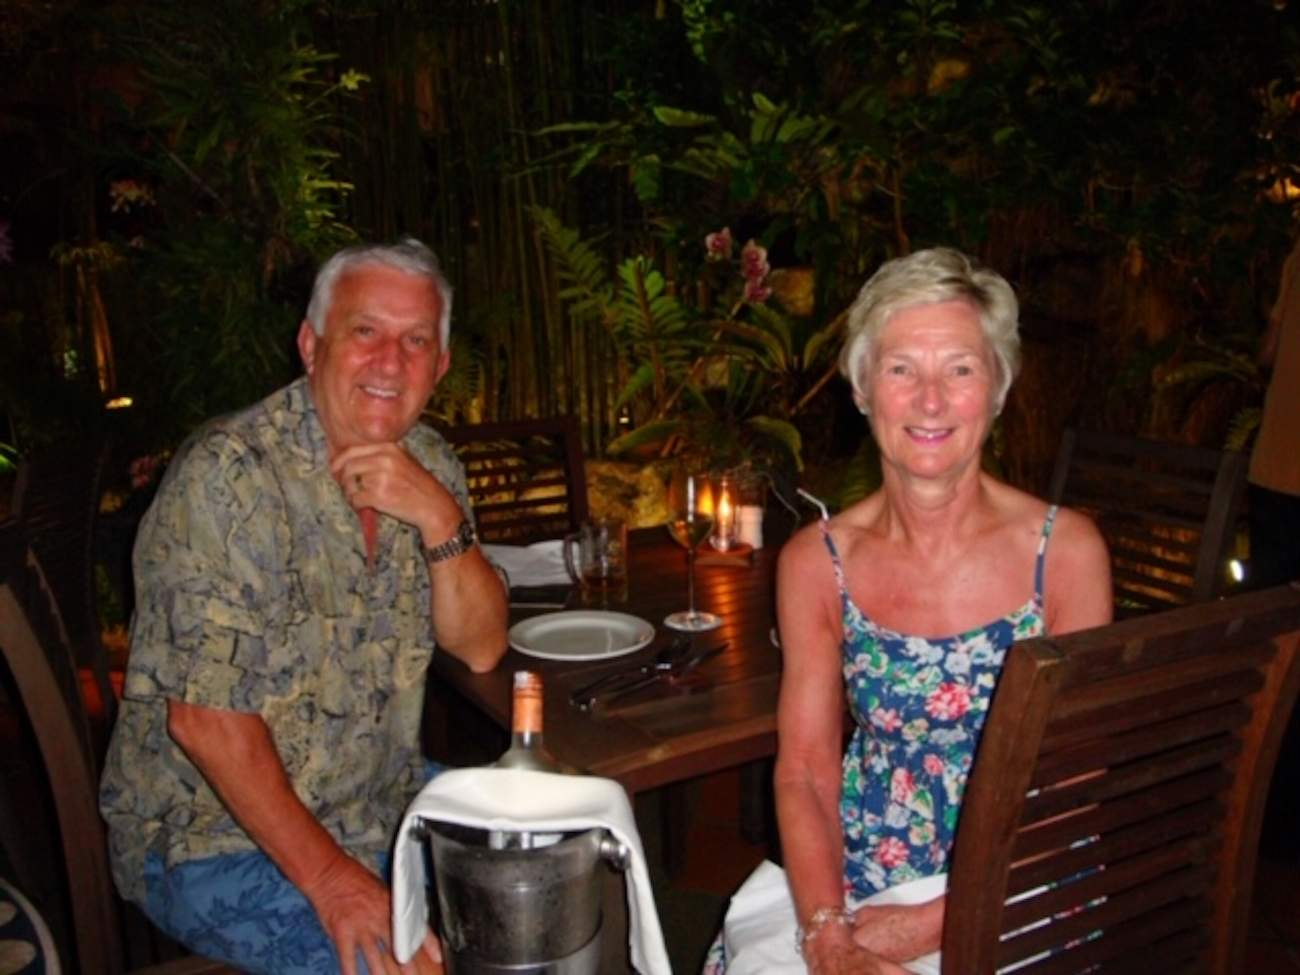 AllClear customers The Cook family enjoying a night out on holiday